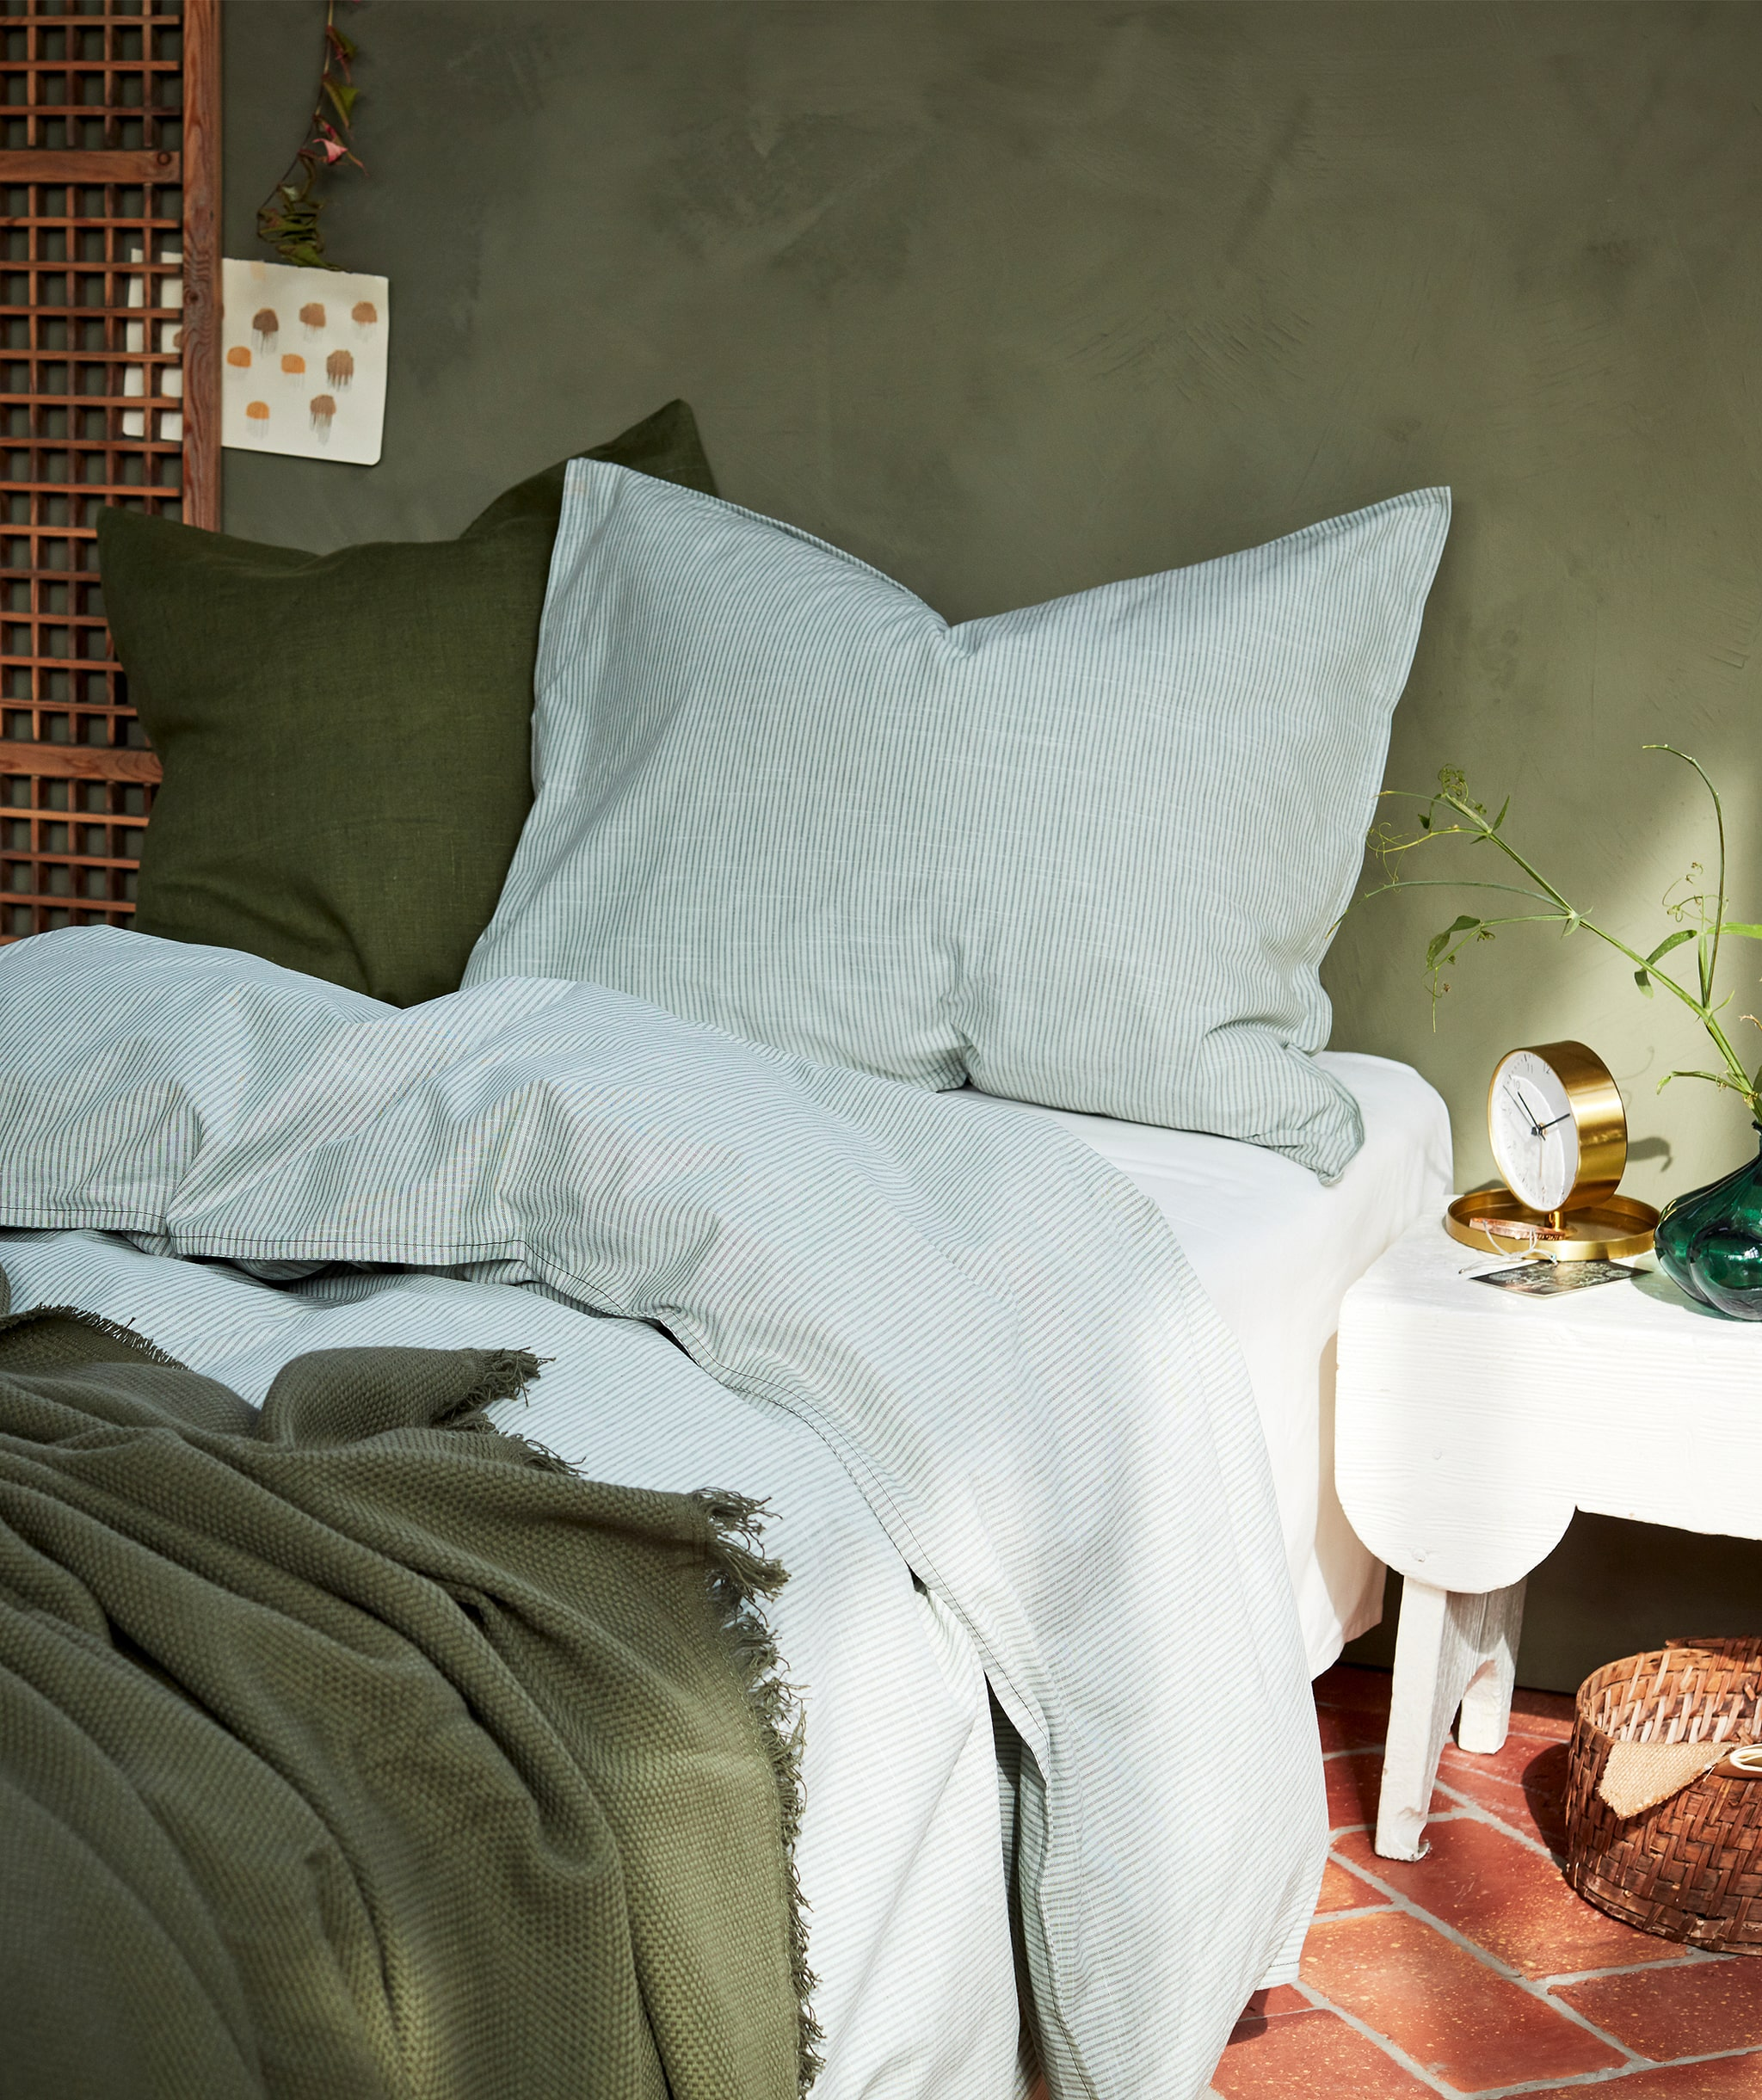 A cosy bed with bedlinen in white and green, two large pillows and rays of daylight coming in from the right.